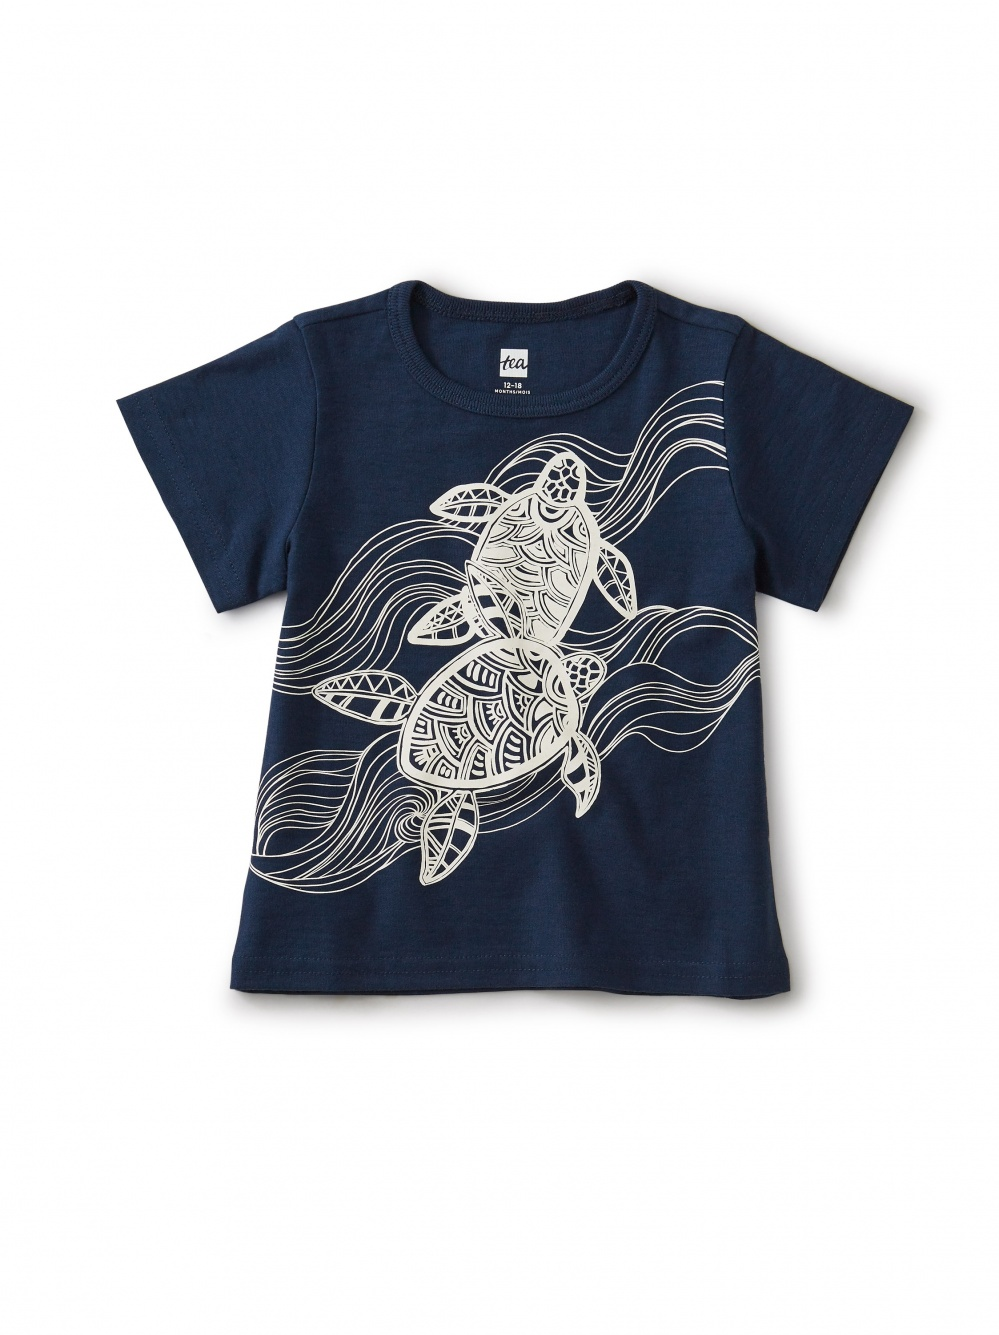 Turtle Graphic Baby Tee